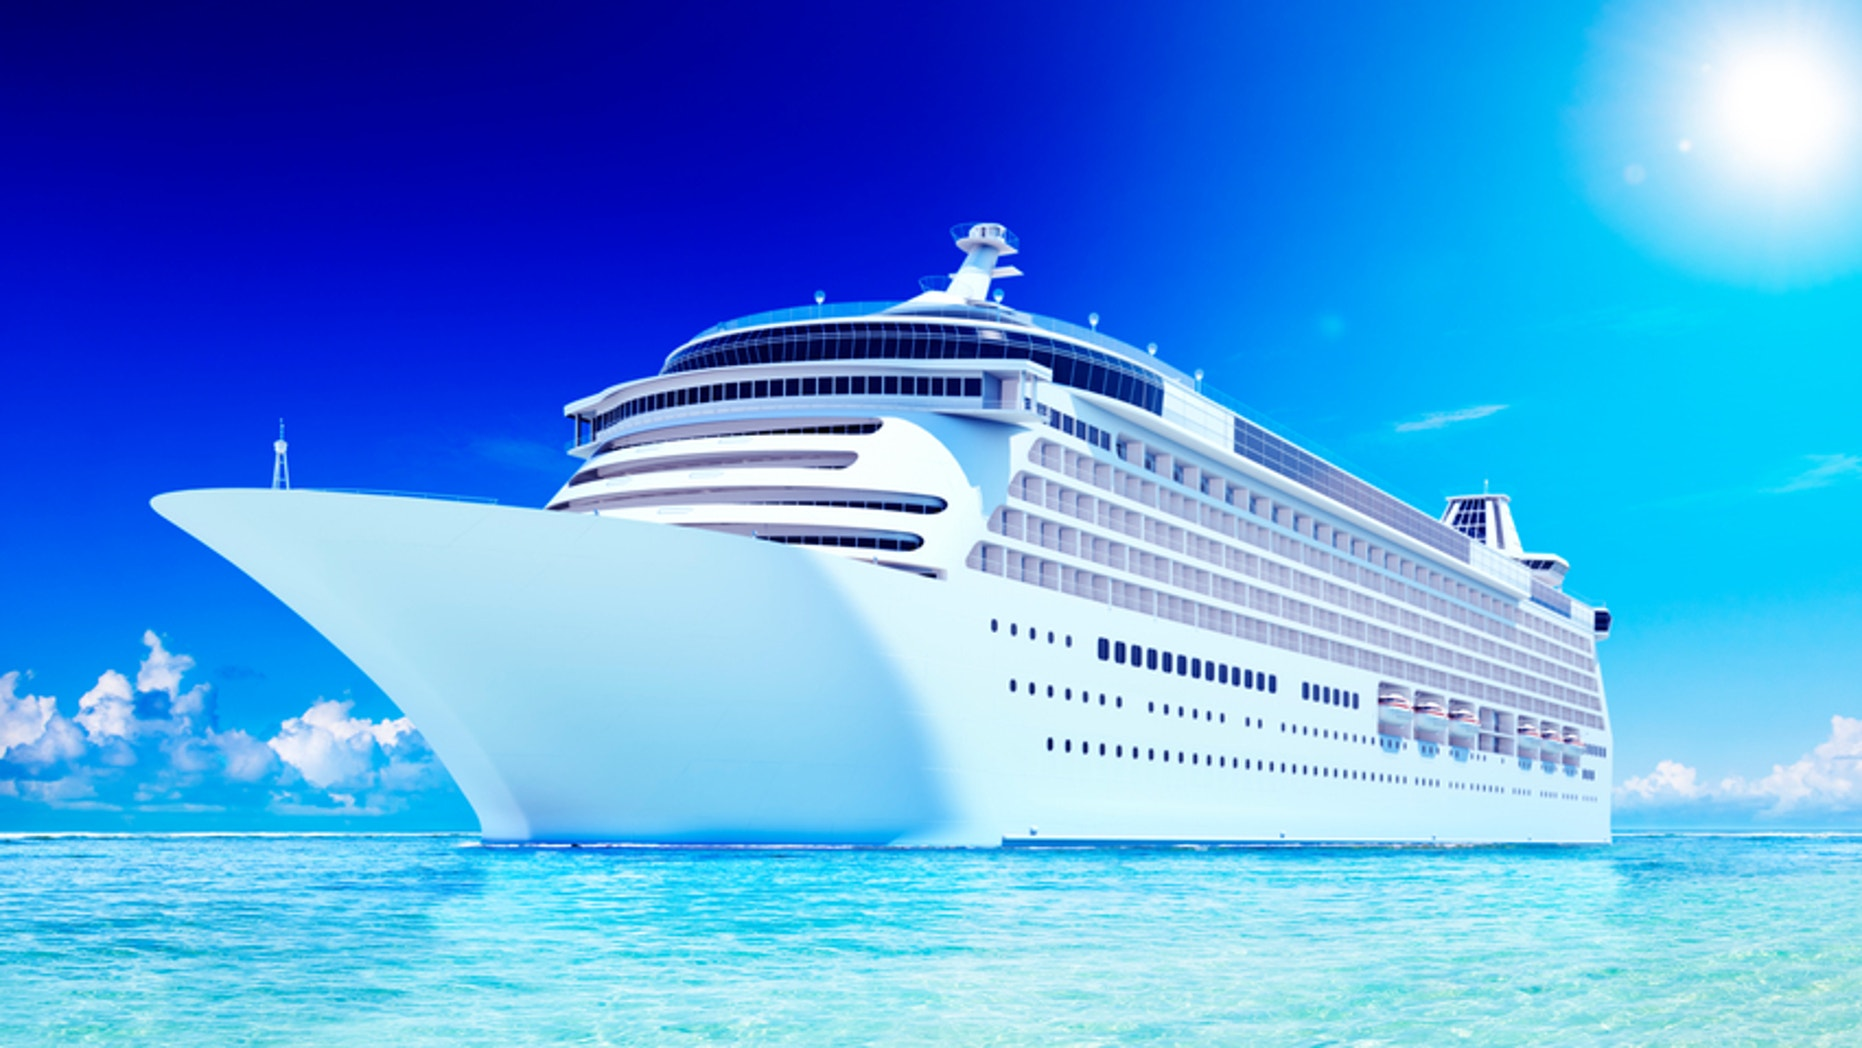 Did you know these tips about cruising?